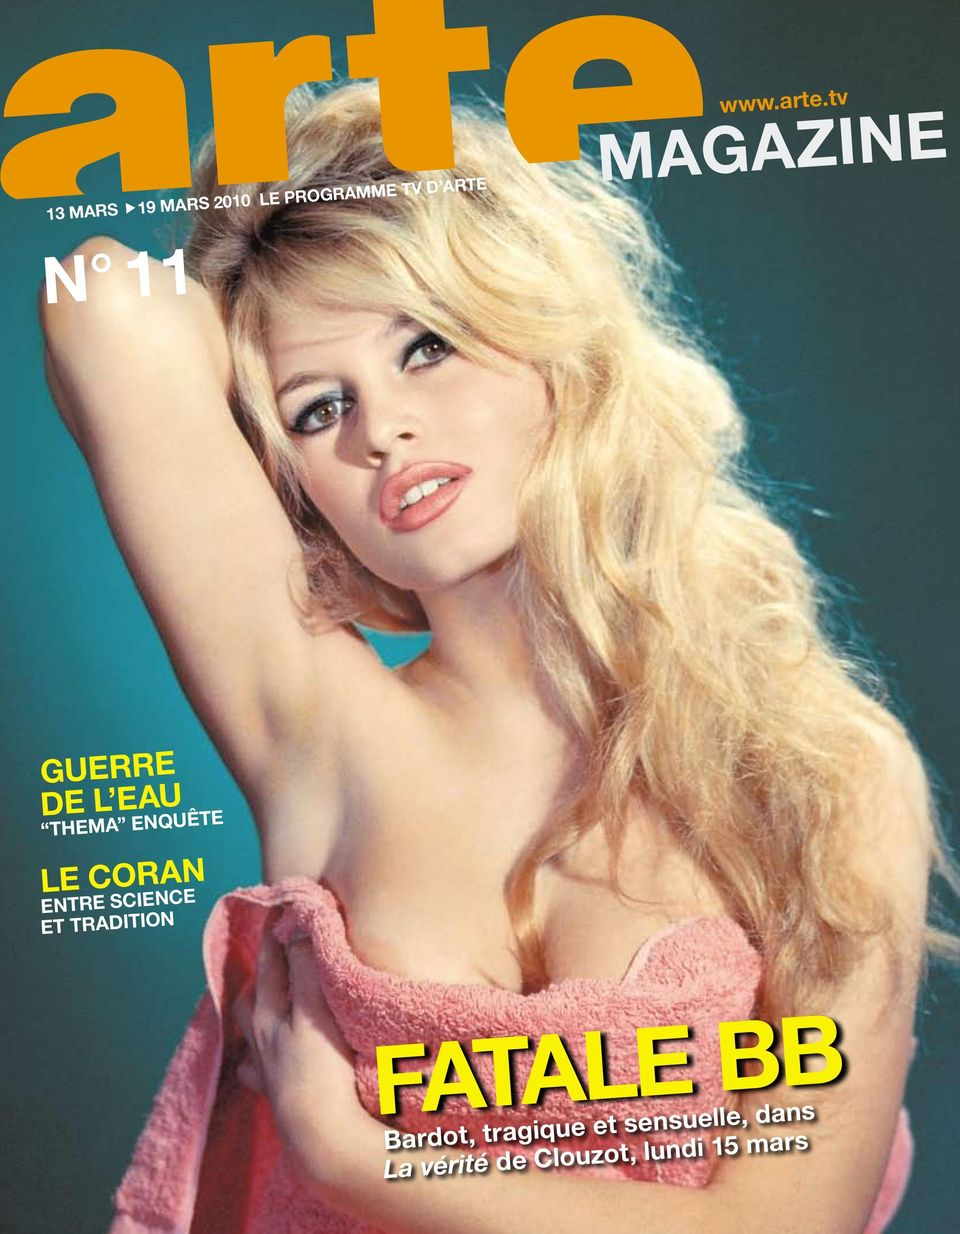 CORAN ENTRE SCIENCE ET TRADITION Fatale BB Bardot,